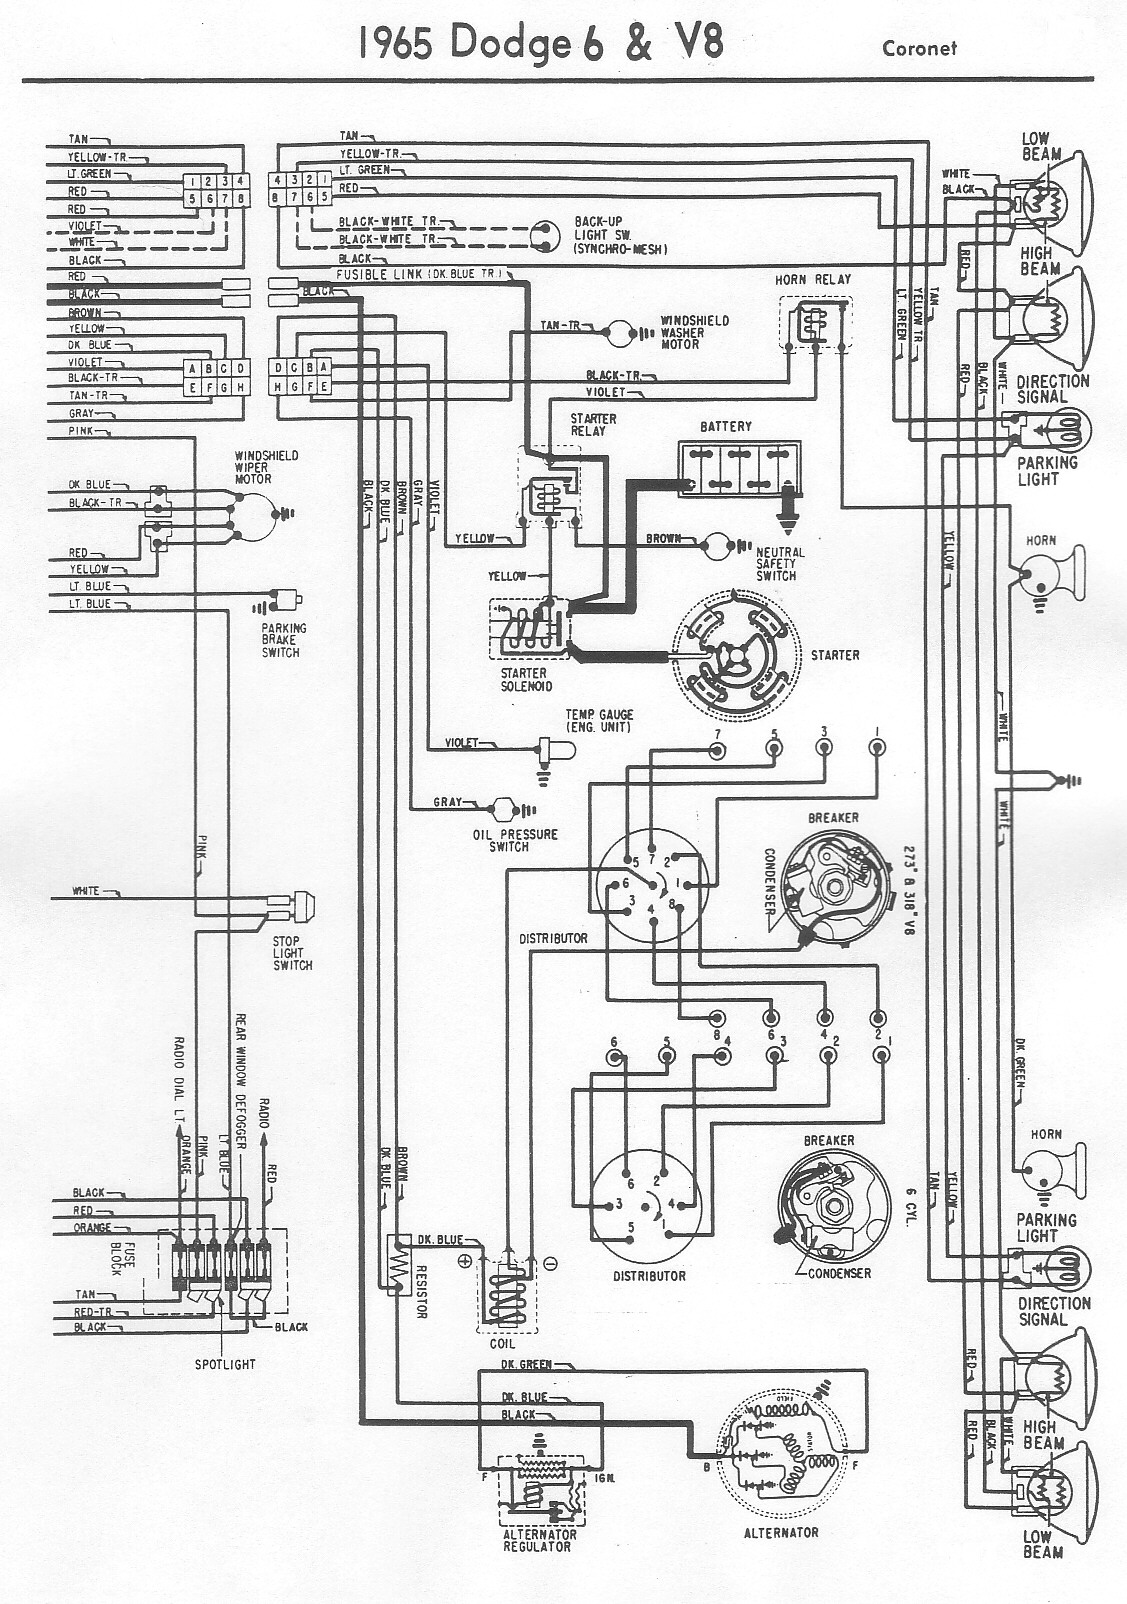 [WRG-8765] 76 Chrysler Cordoba Wiring Diagram